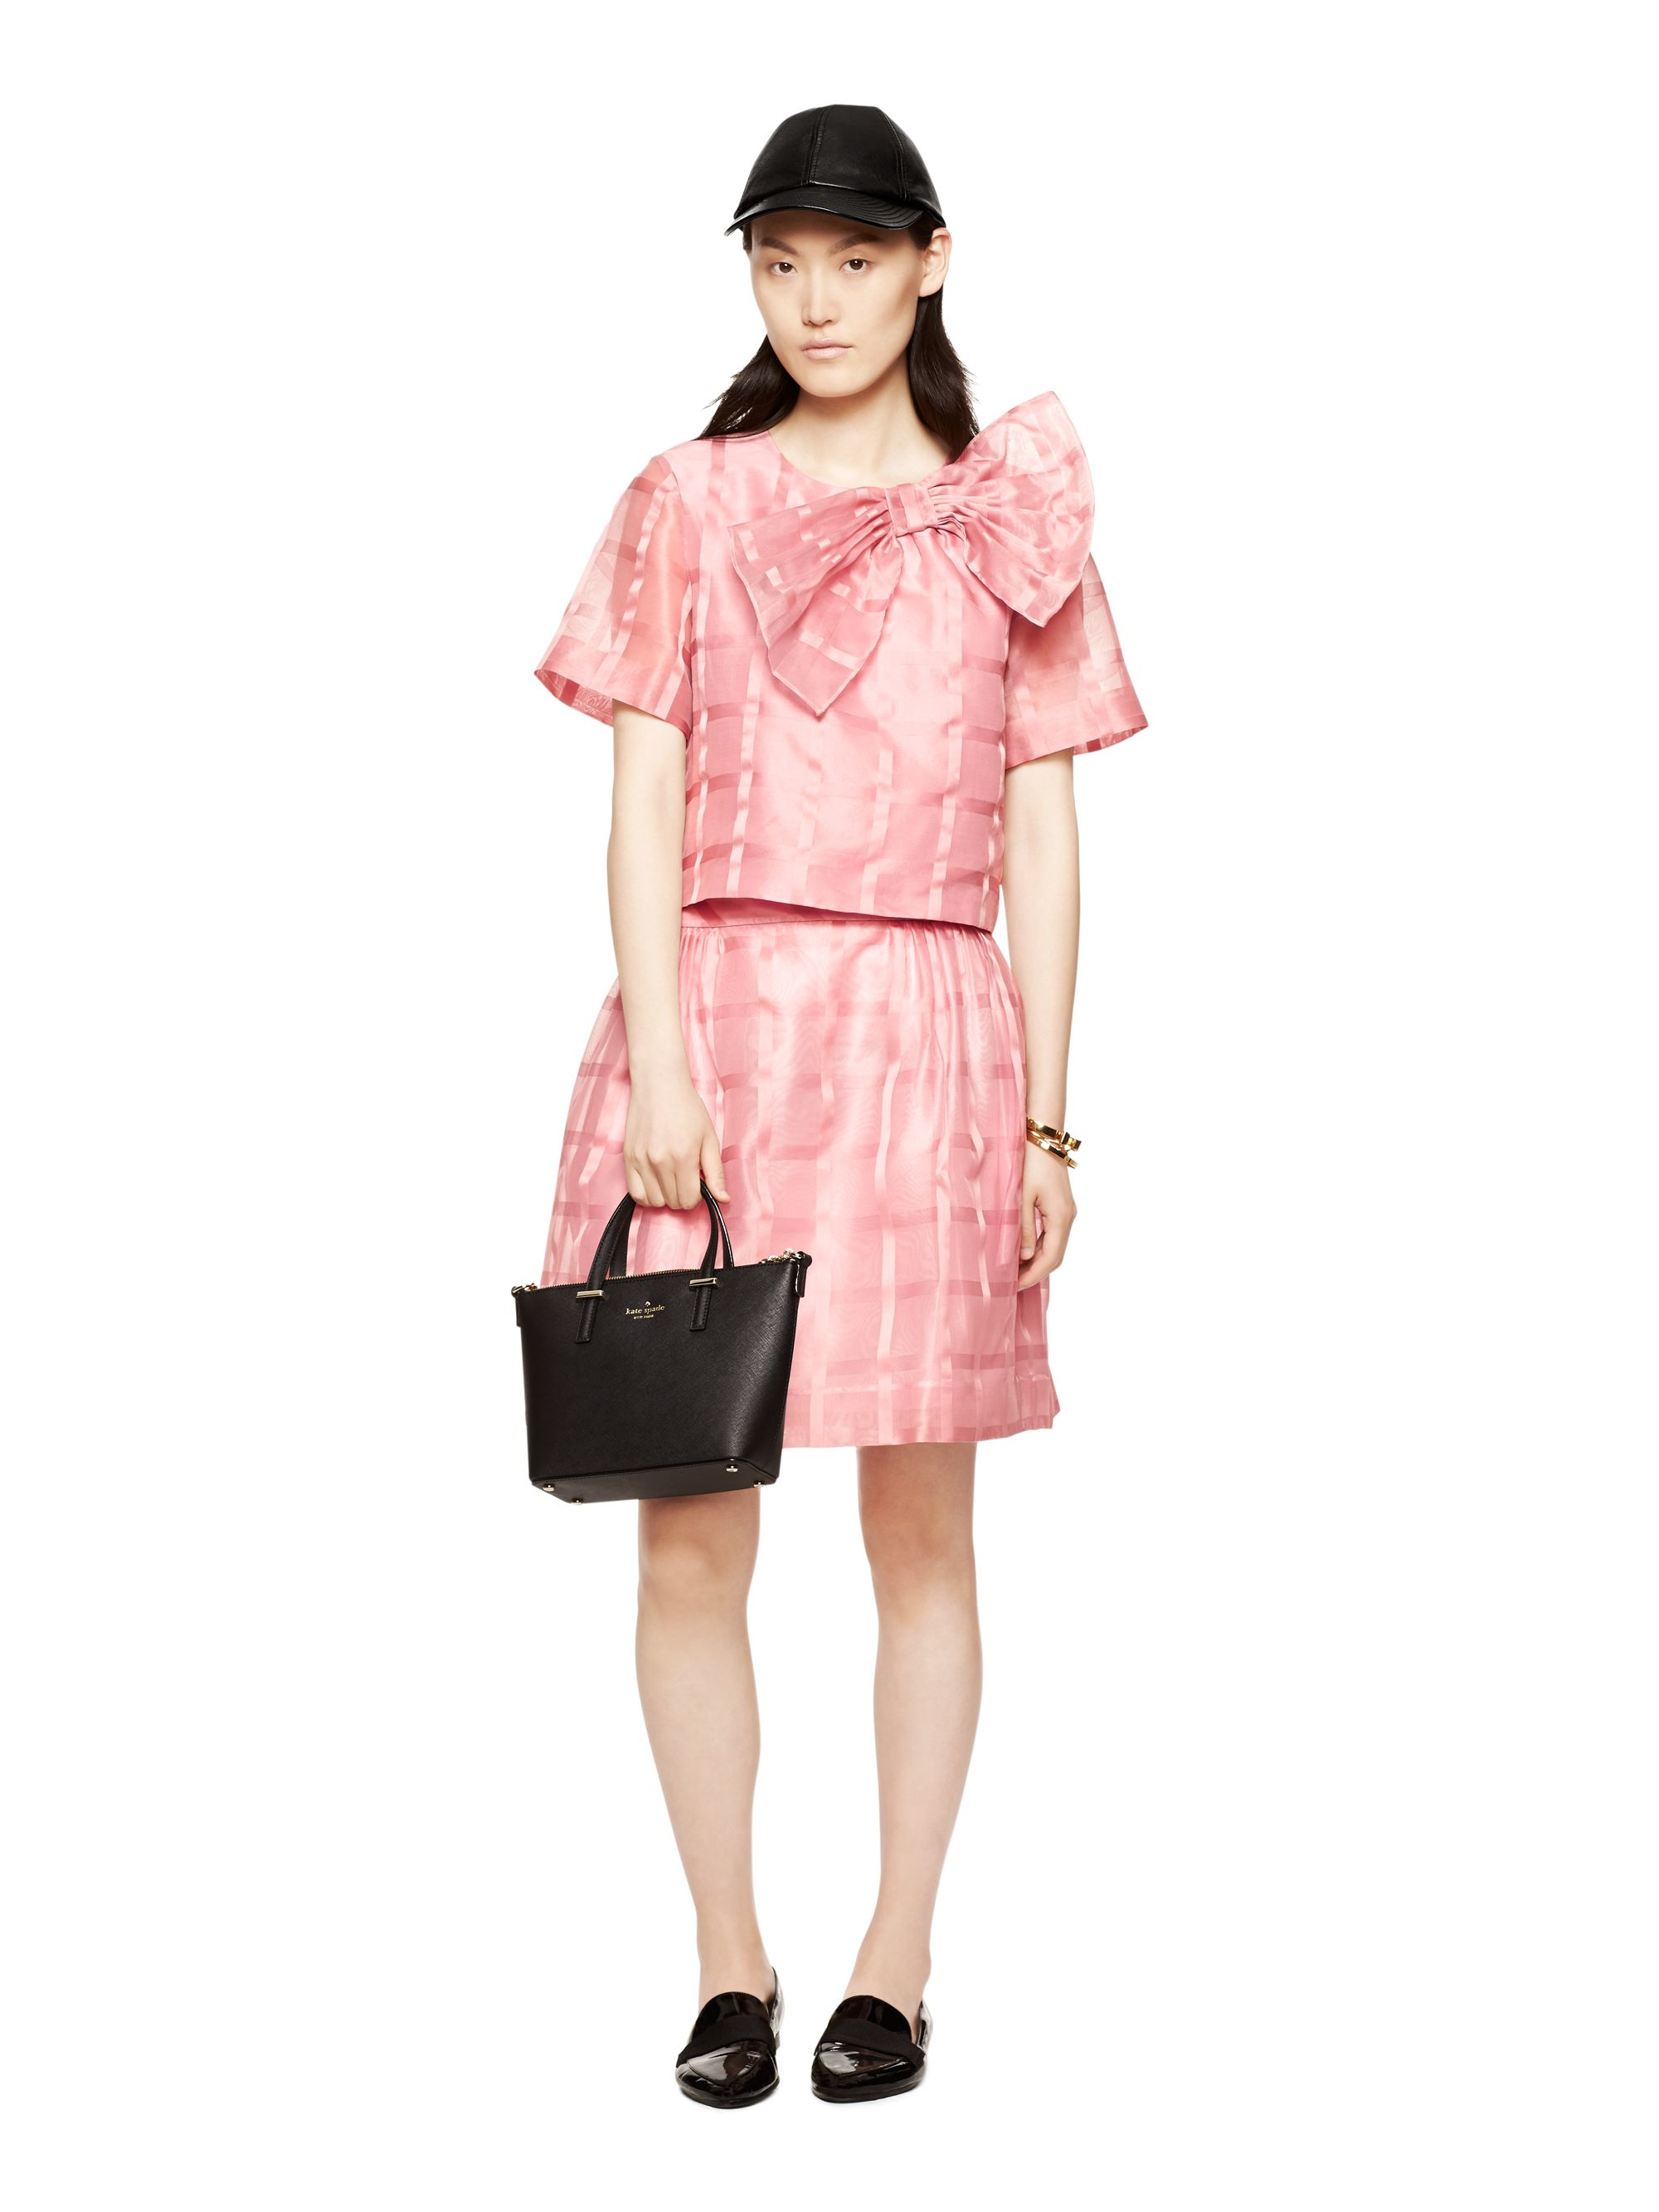 Lyst - Kate spade new york Adri Top in Pink